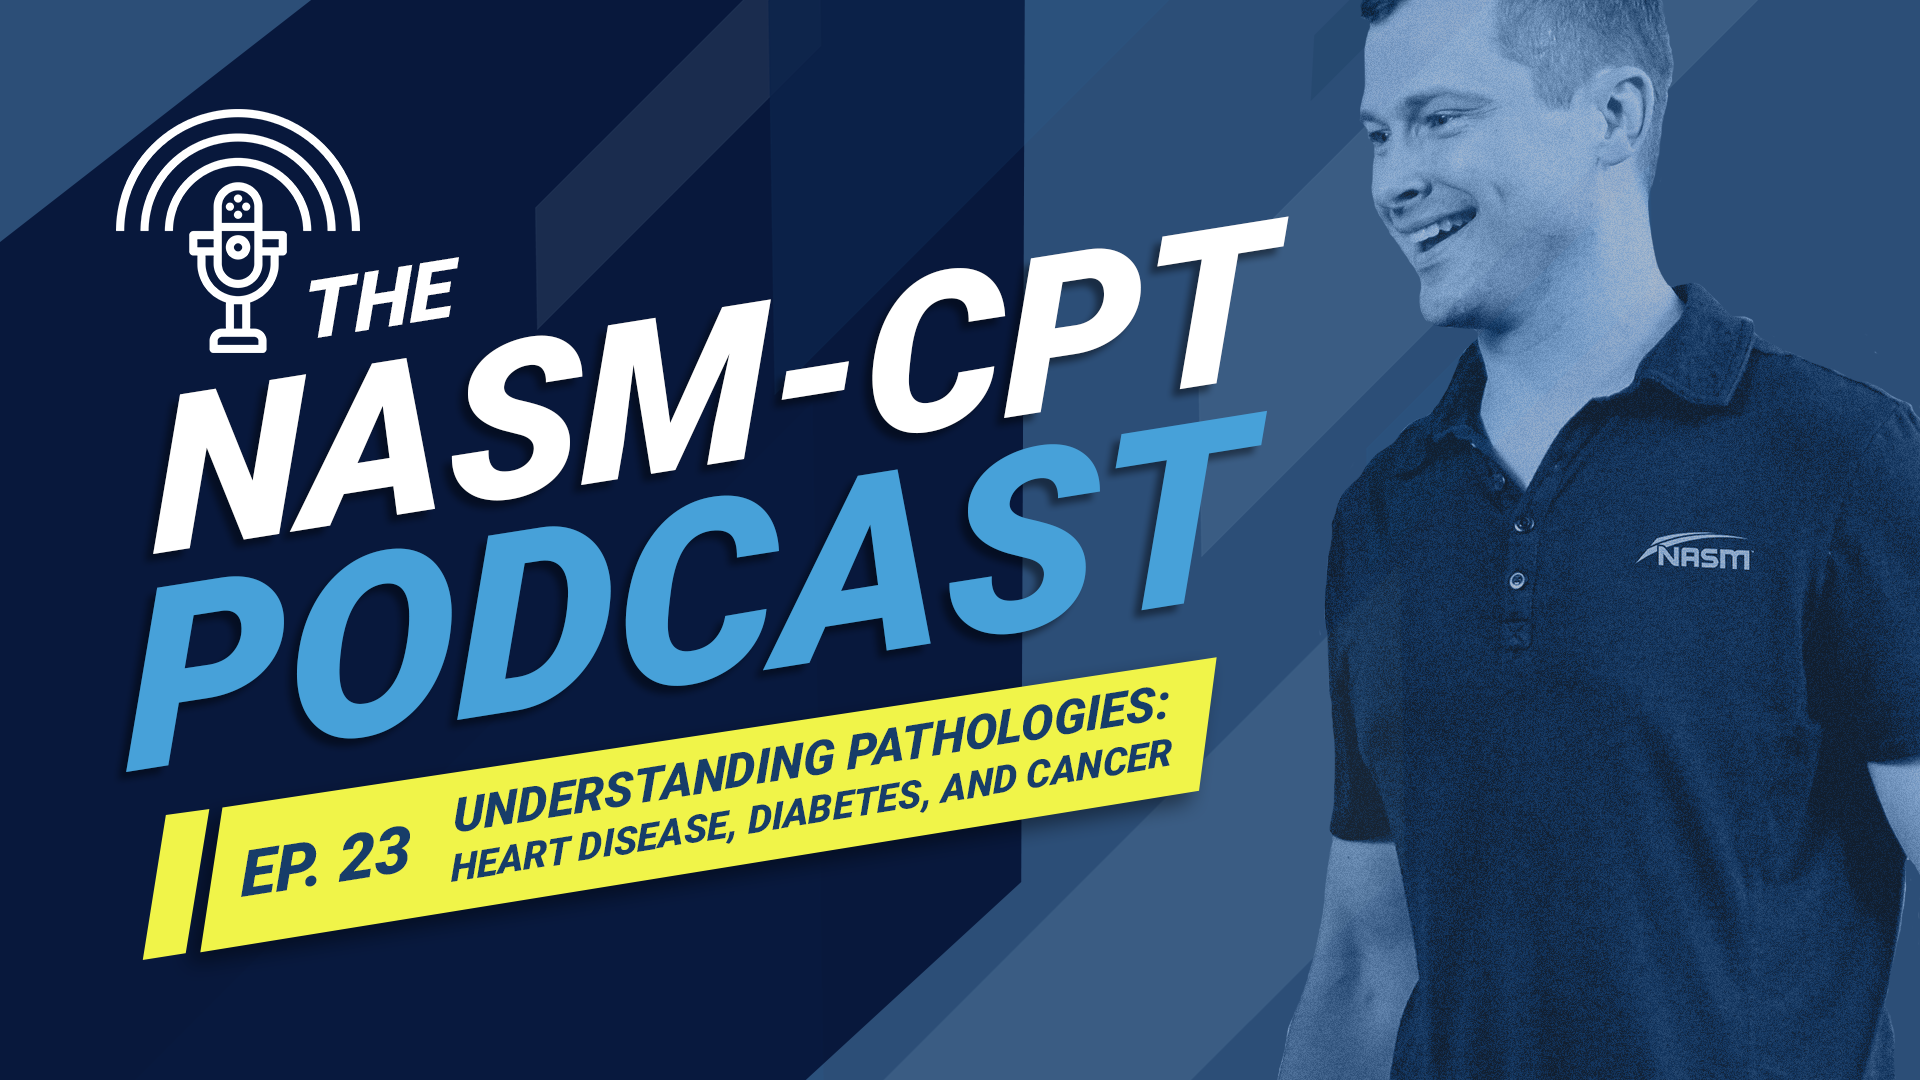 NASM-CPT Podcast EP. 23